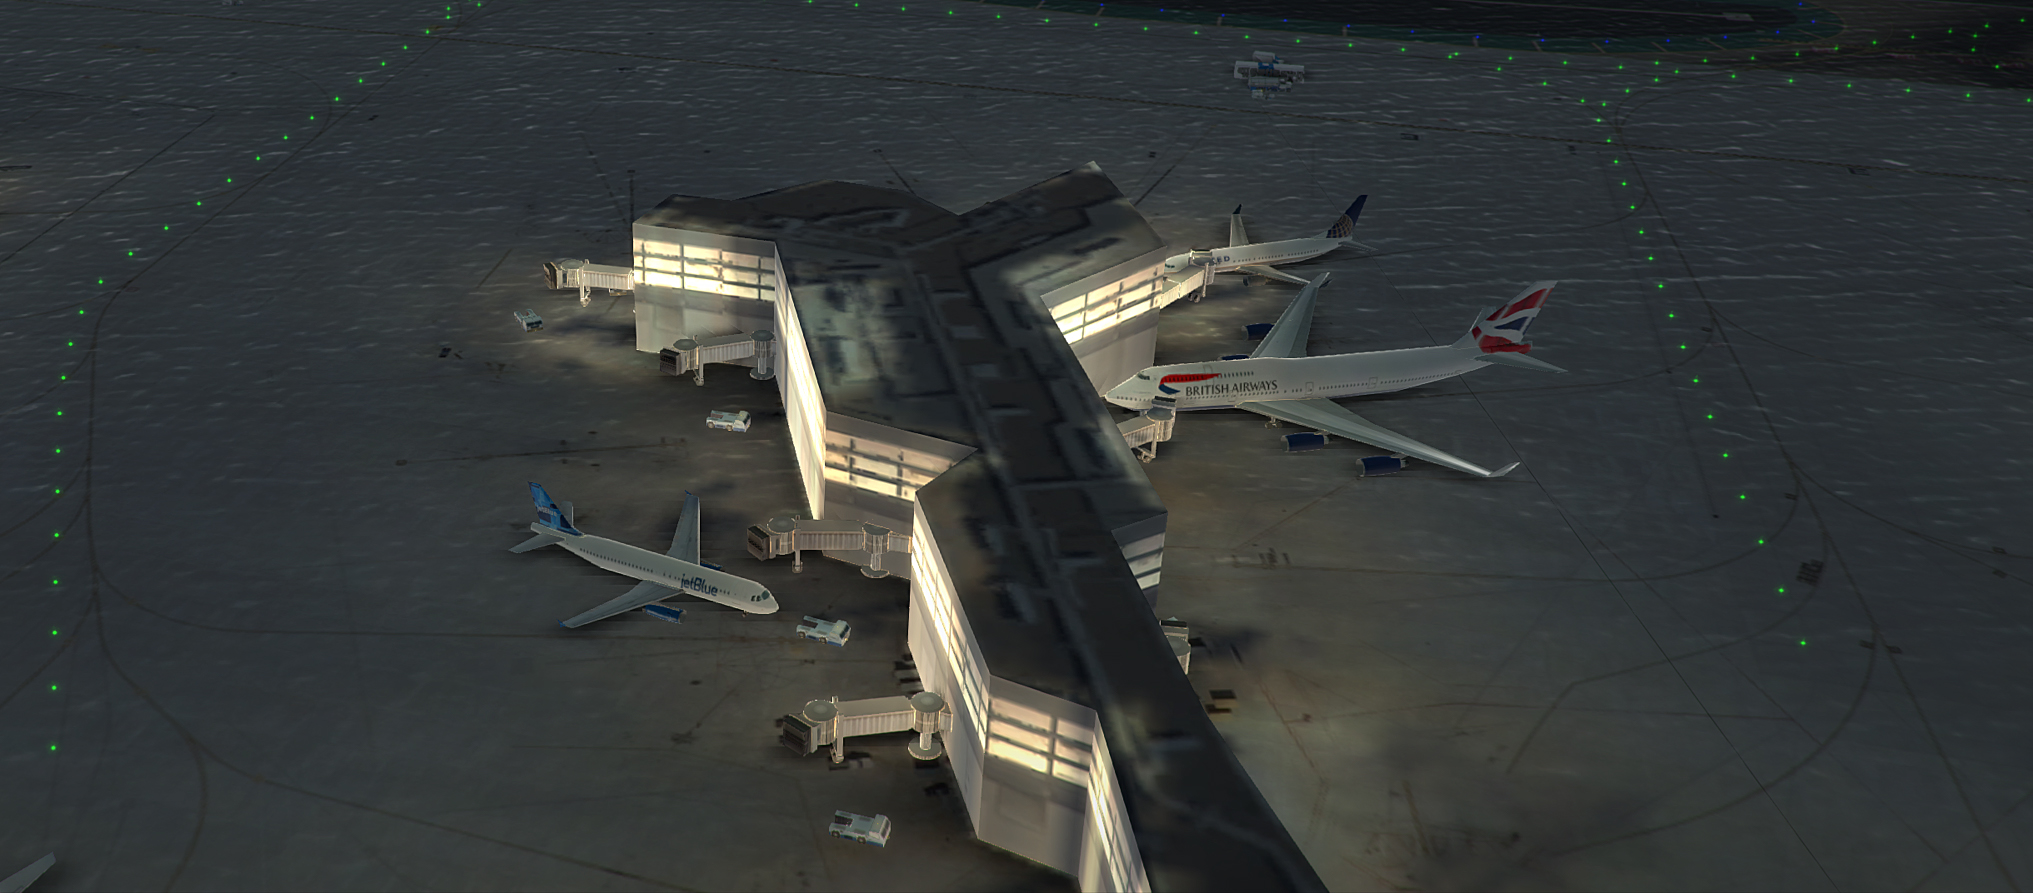 REAL COLOR KSAN FOR TOWER! 3D